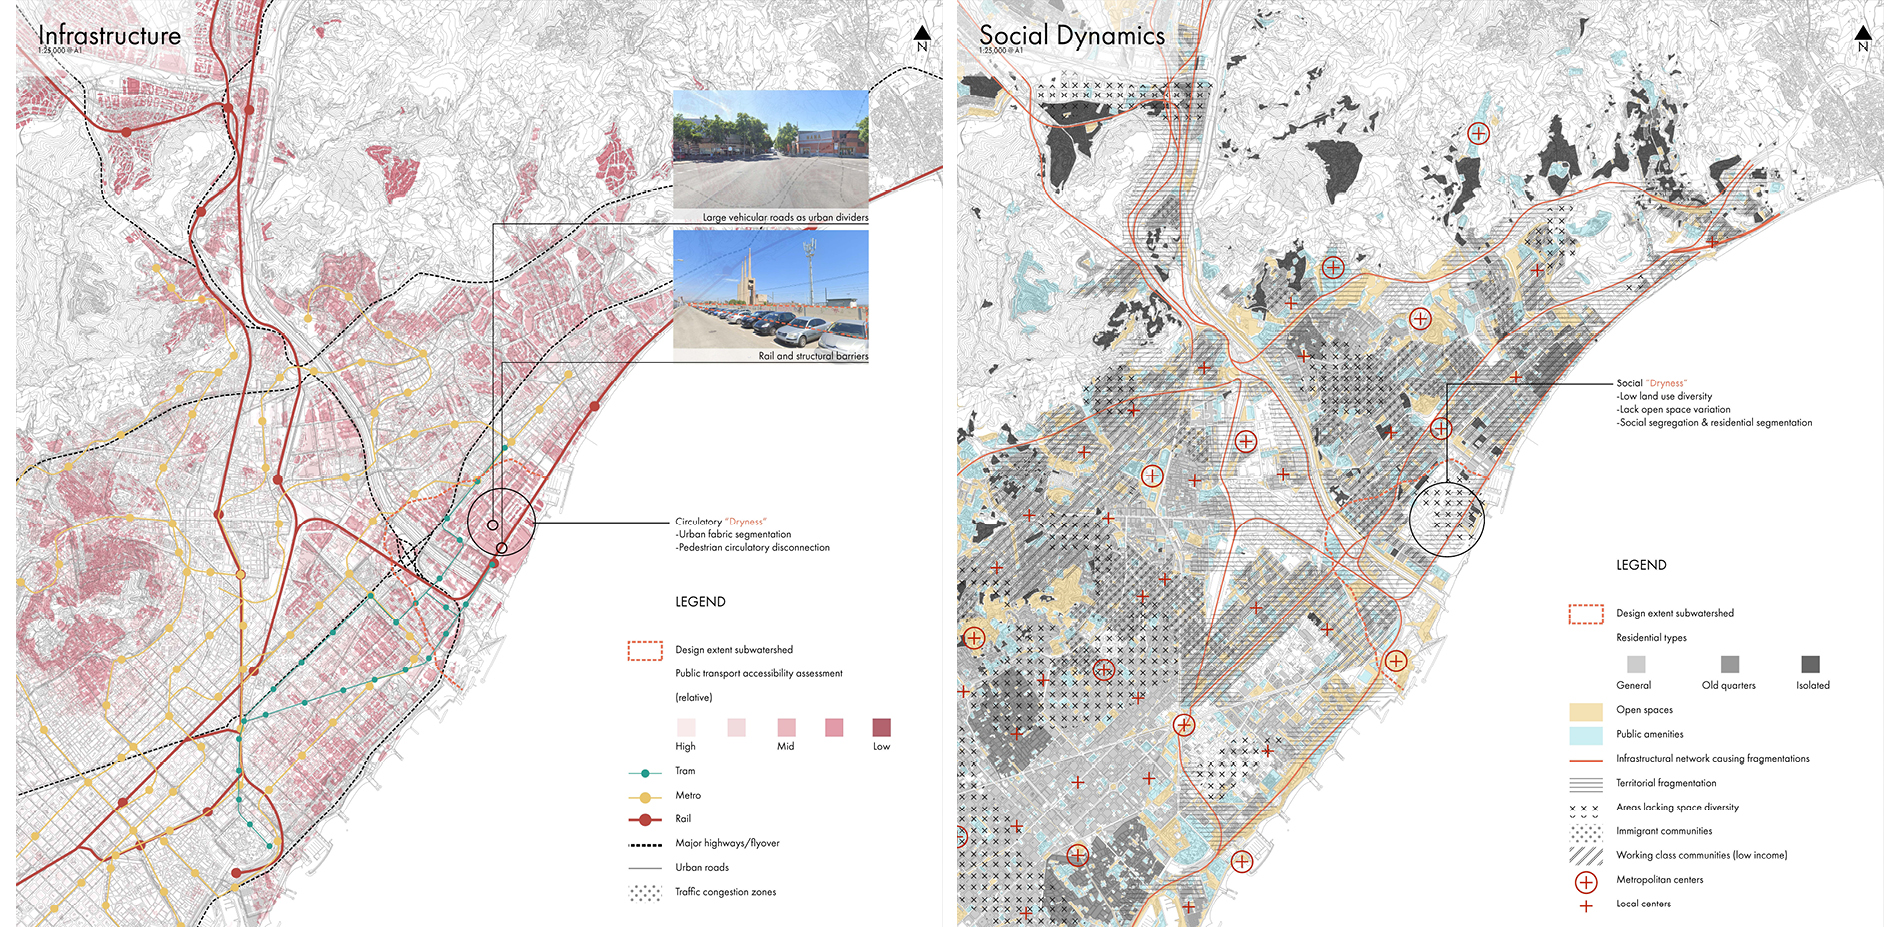 Mapping of Infrastructure and Social Dynamics